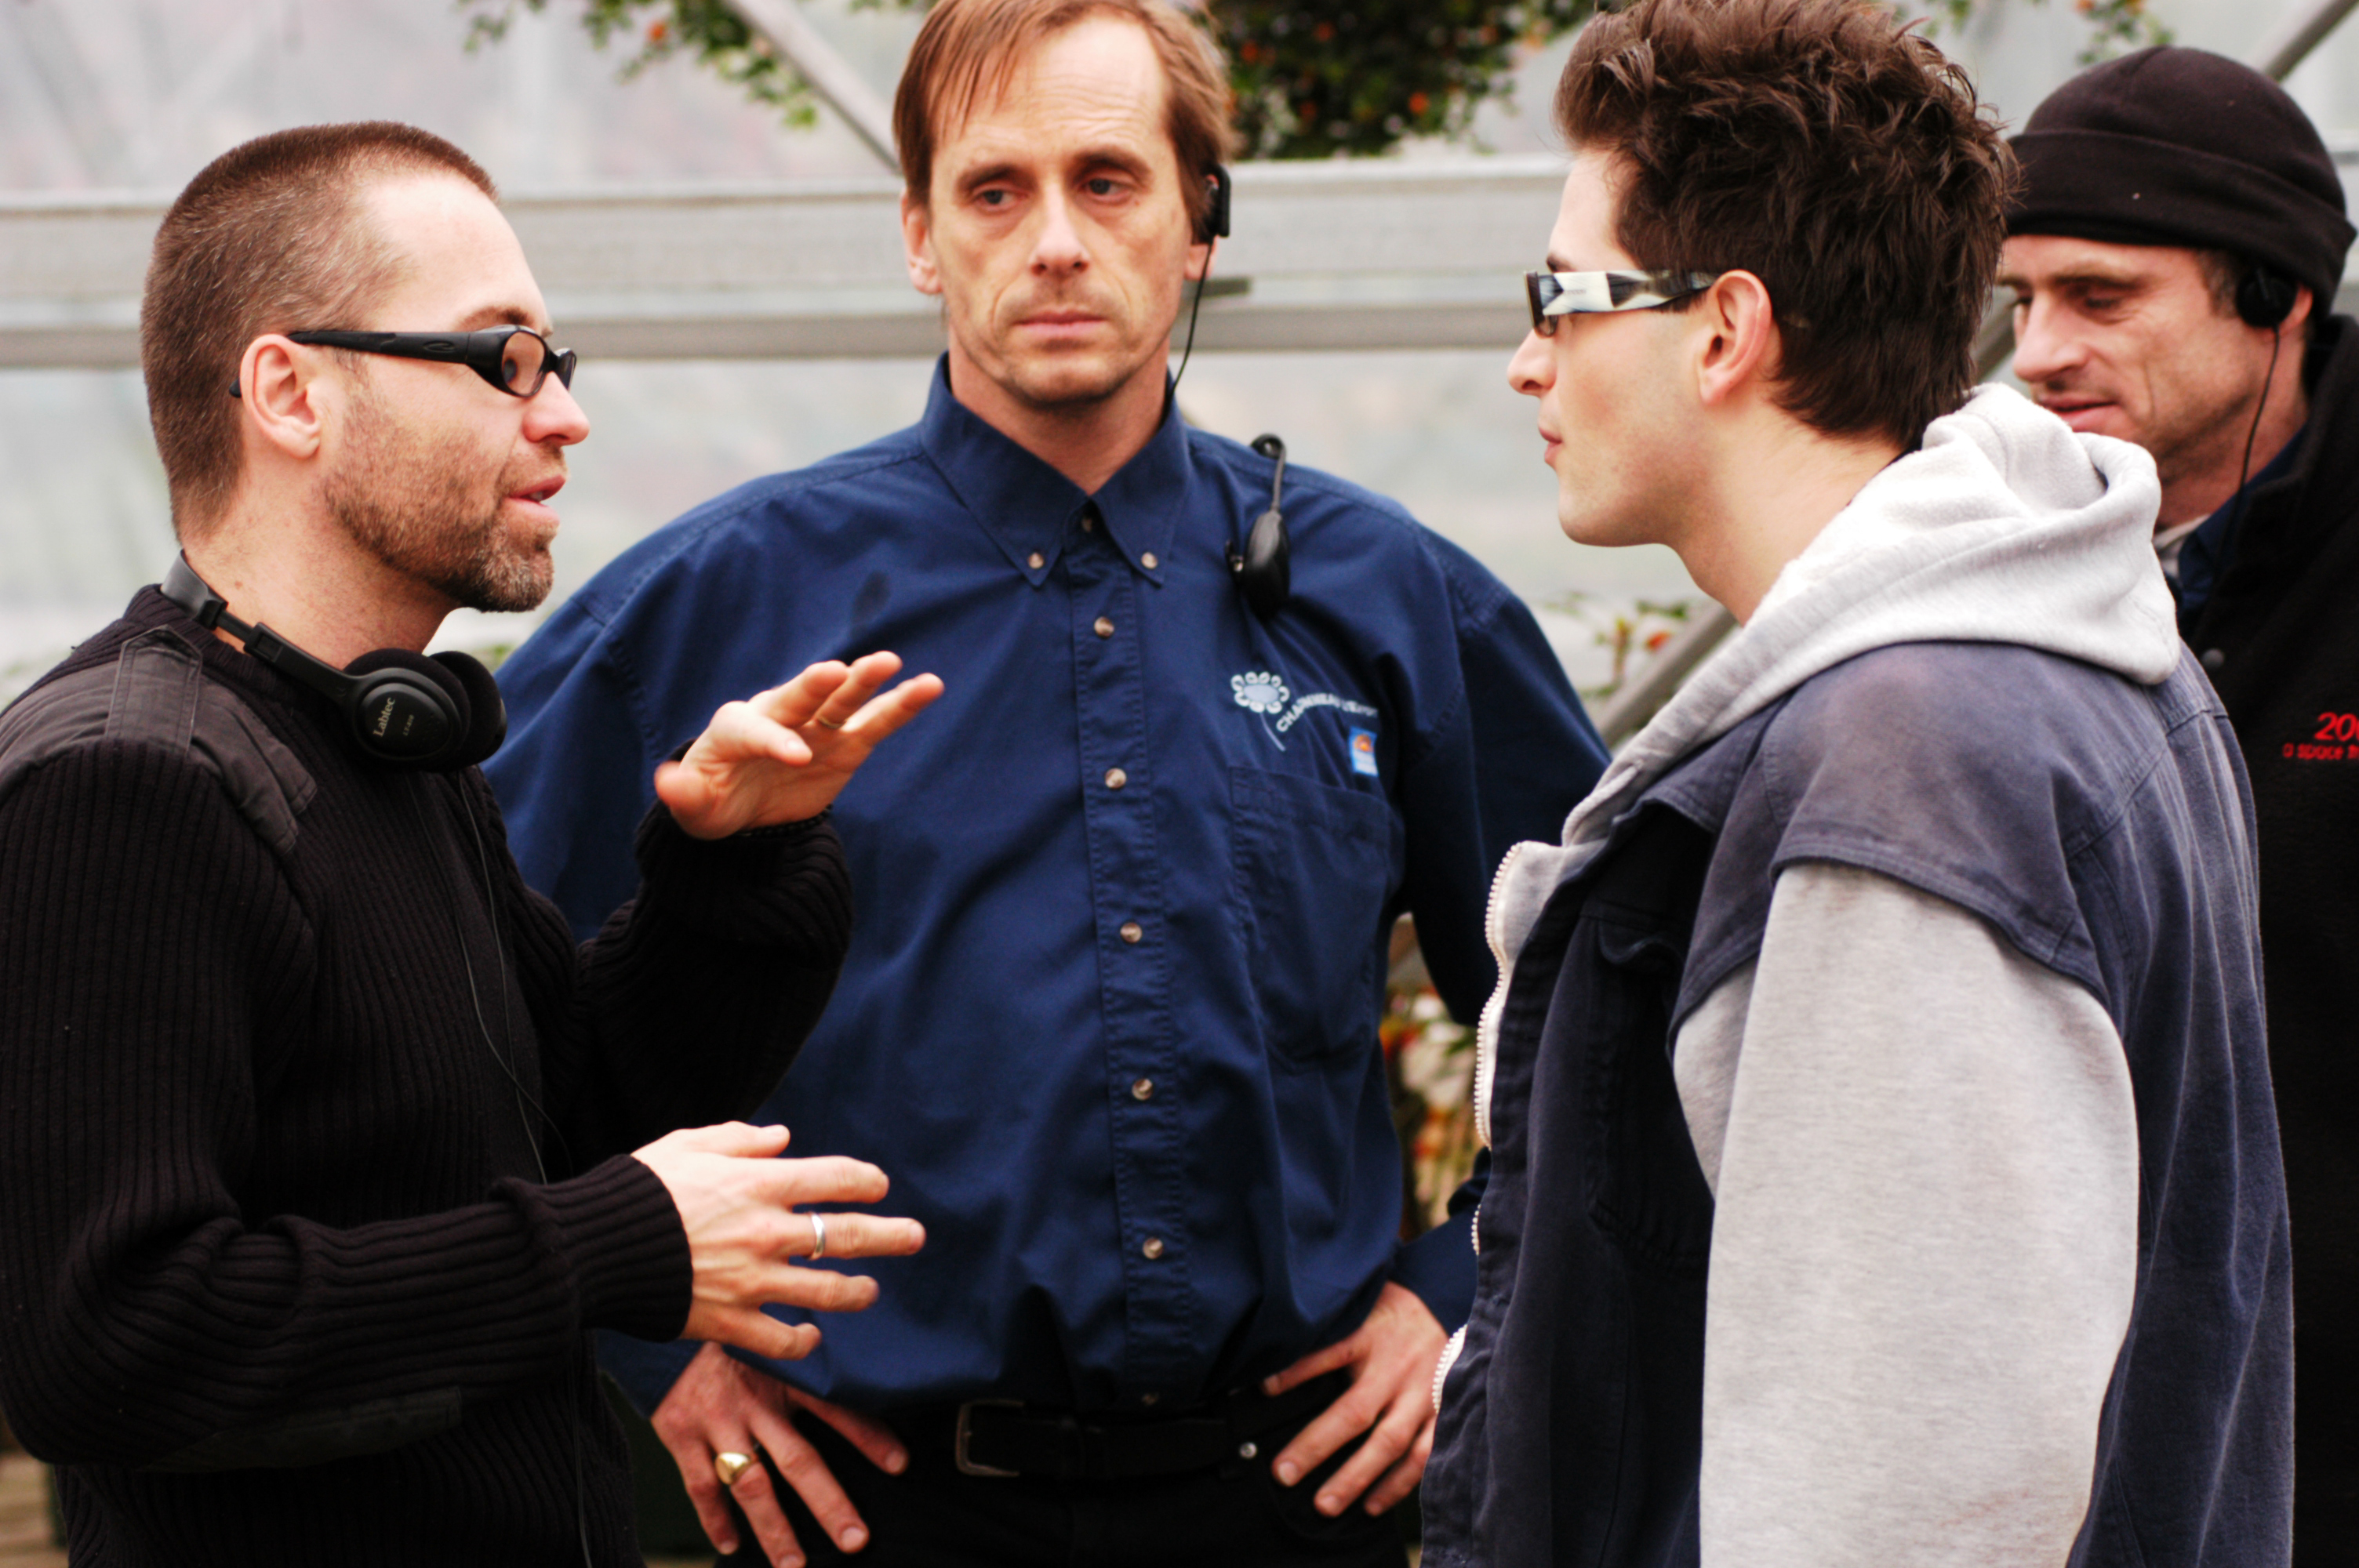 Pure - Director Jim Donovan and Actors Gianpaolo Venuta and Brian D. Wright on the set 2003